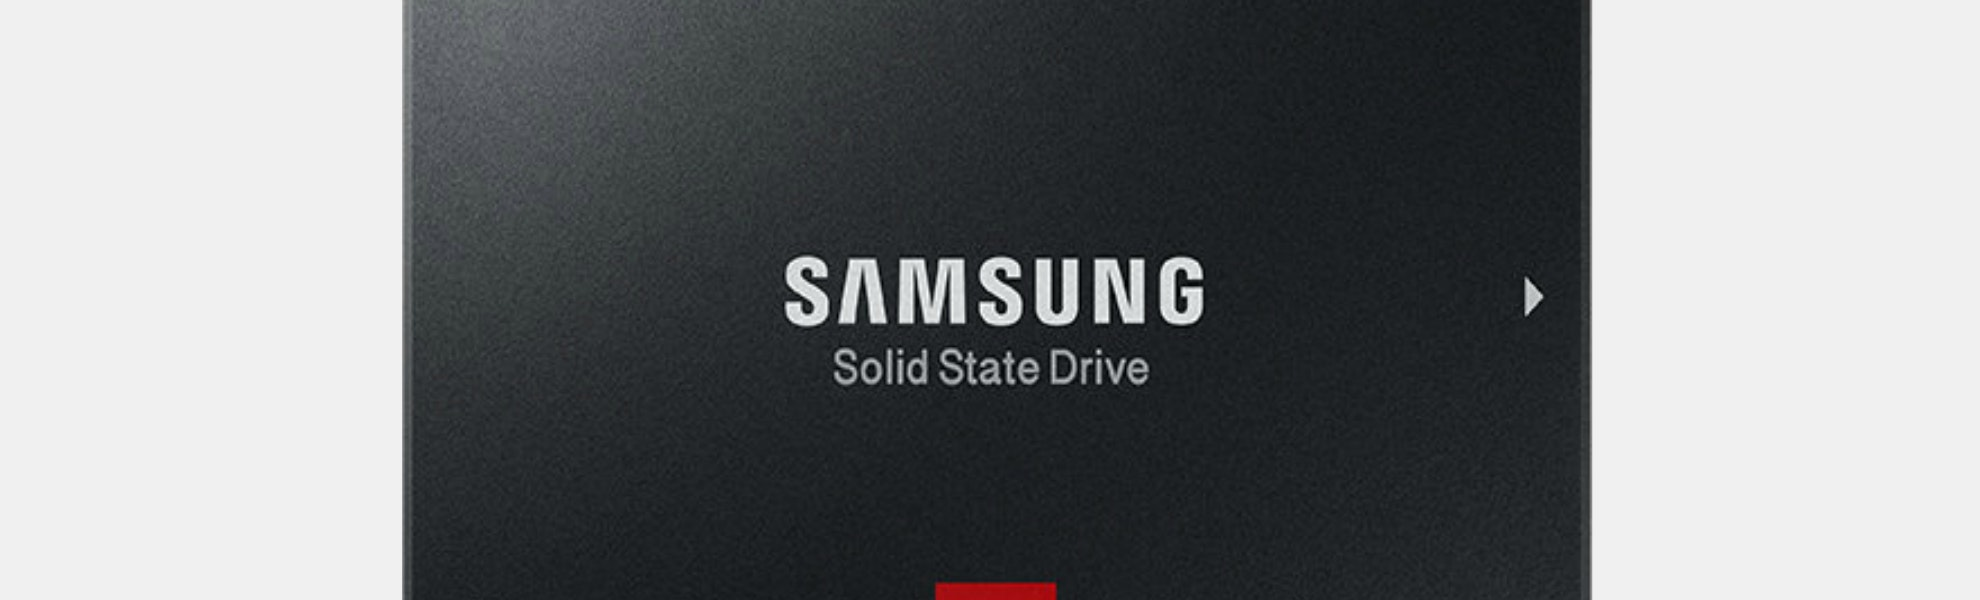 "Samsung 860 PRO 2.5"" SATA III Internal SSD Drives"